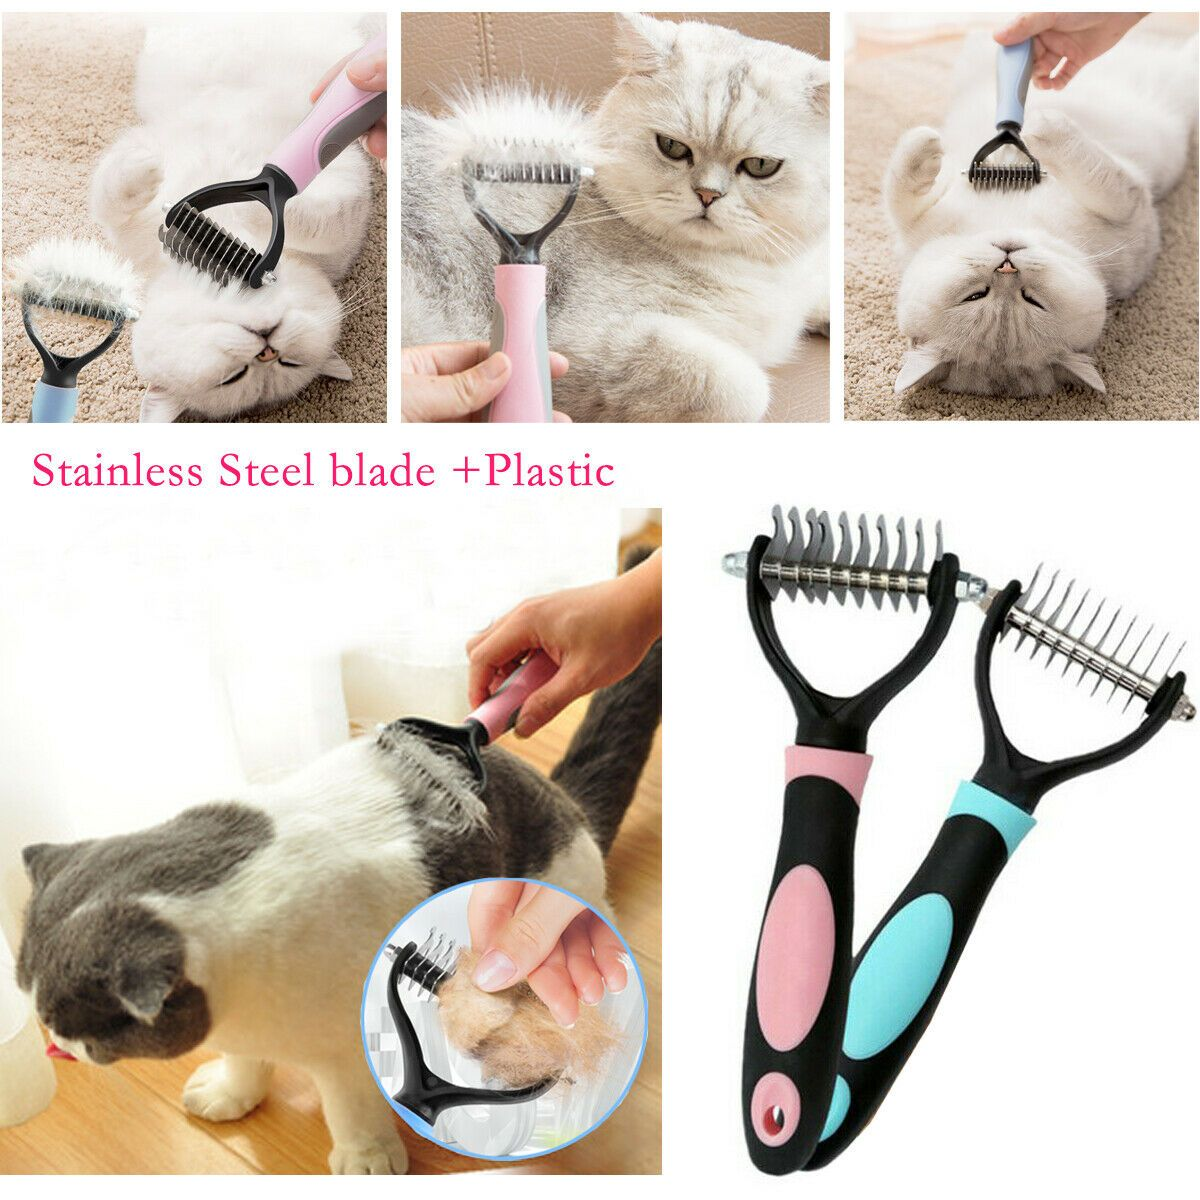 Pet Open Knot Comb Tangled And Messy Hair Comb Pet Hair Hair Tangles Ideas Of Hair Tangles Hair Tangles Hairtangles In 2020 Messy Hairstyles Pet Hair Tangled